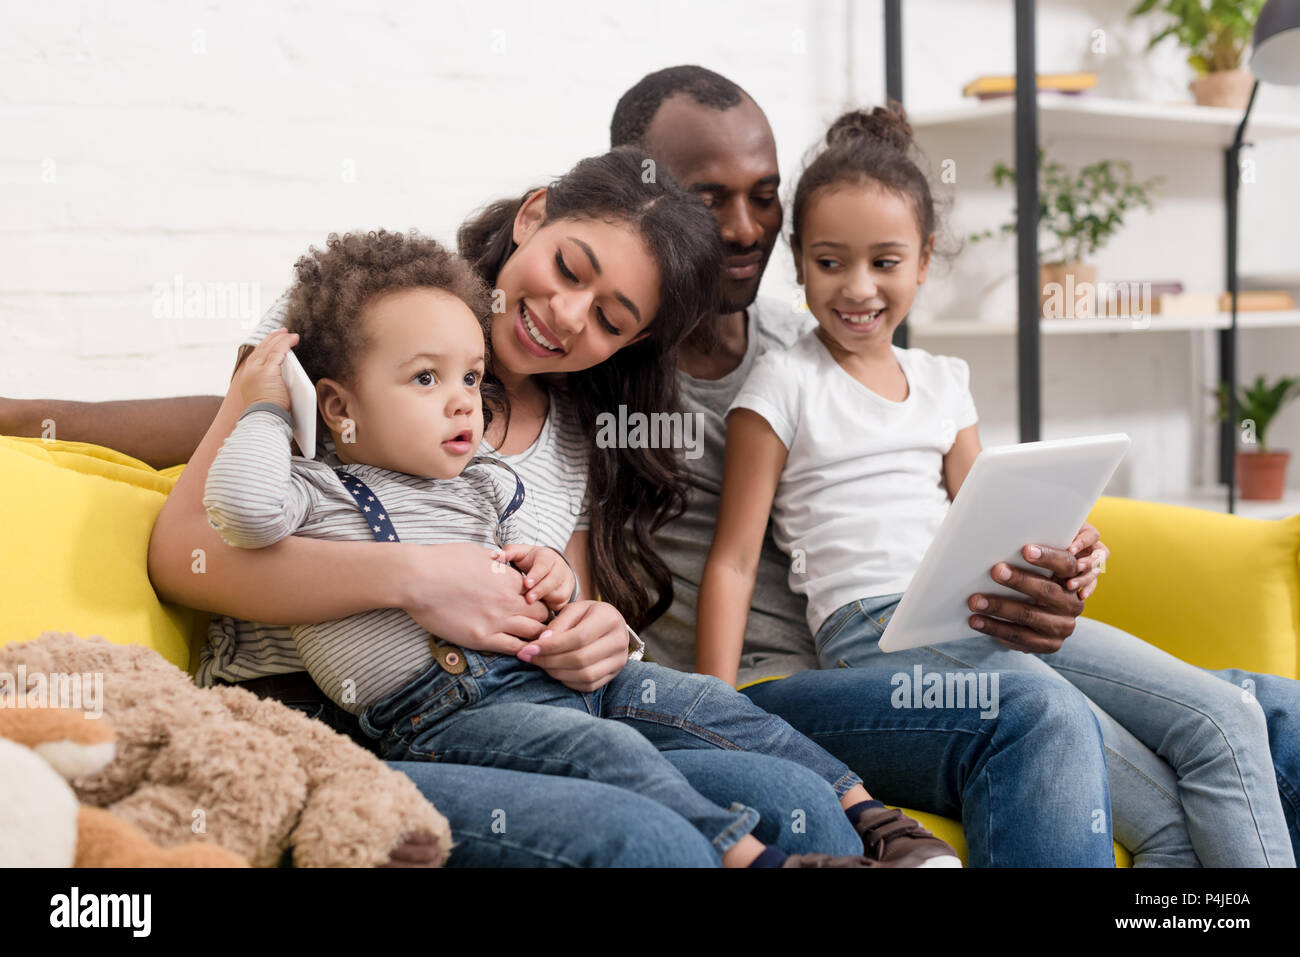 happy young family spending time together with devices at home - Stock Image